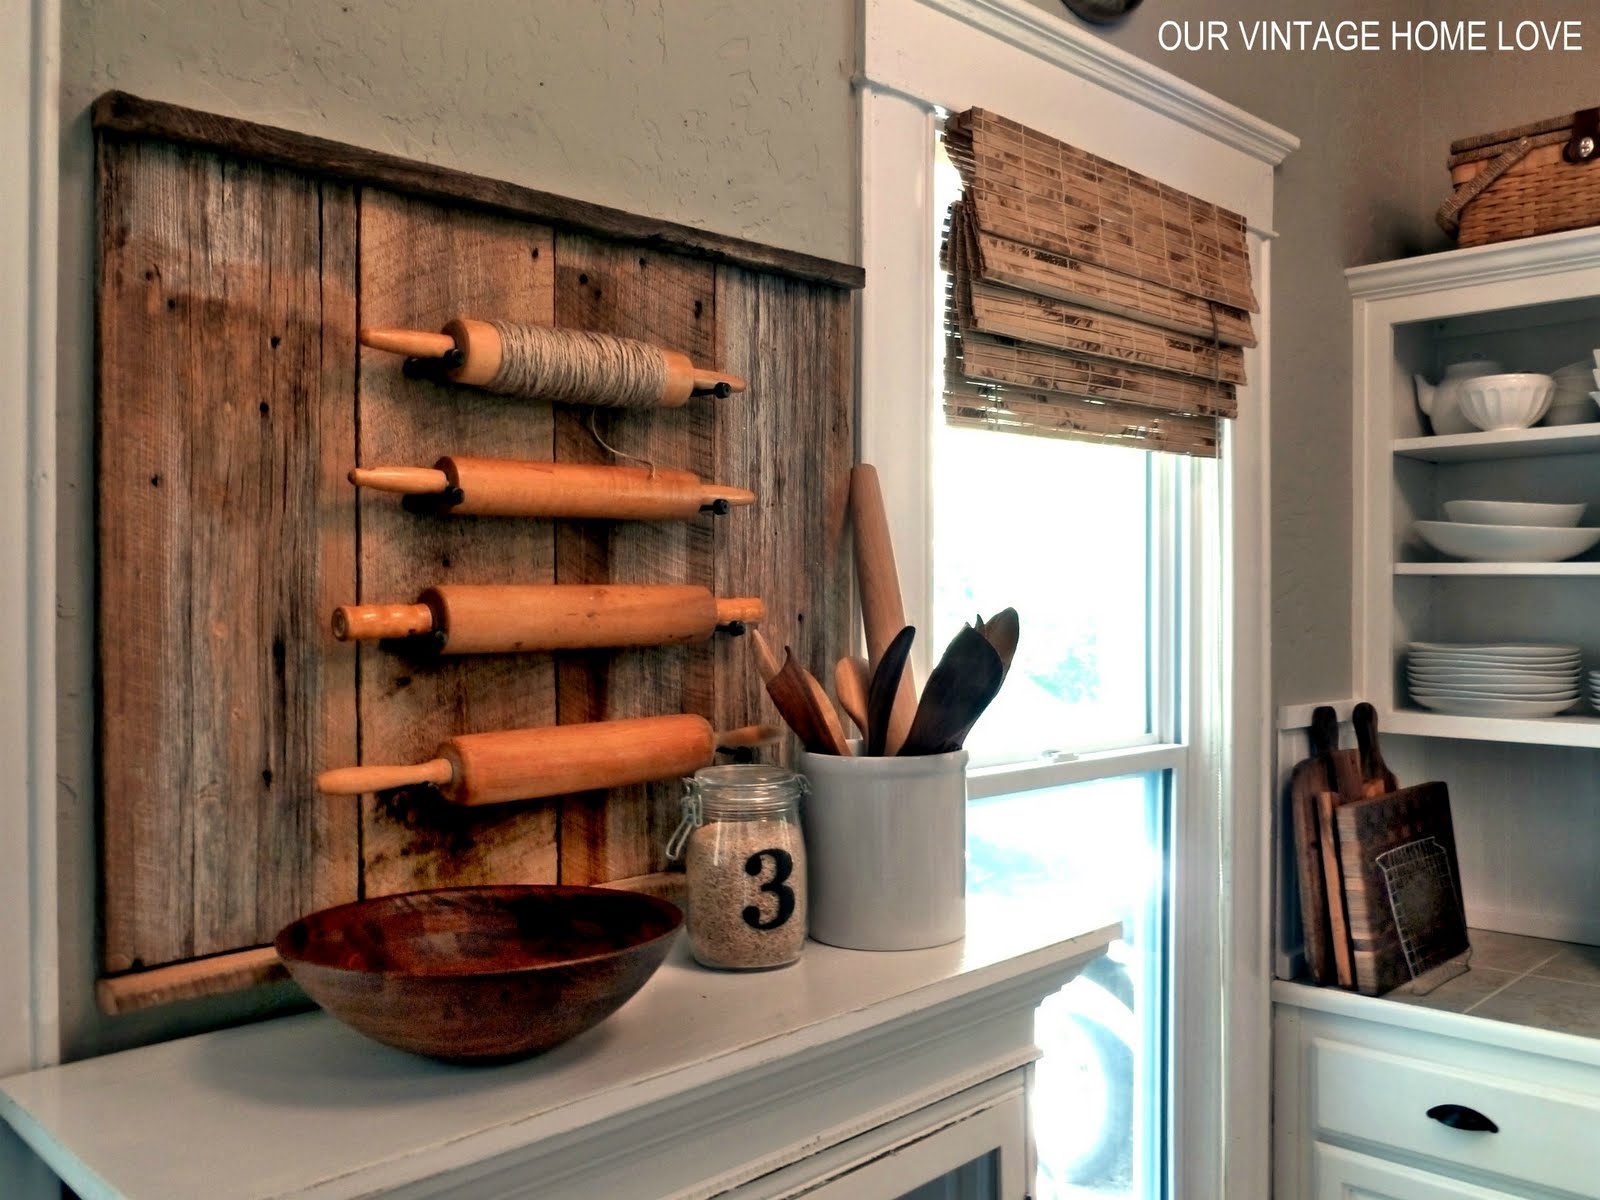 diy interior design ideas vintage home rolling pins 10779